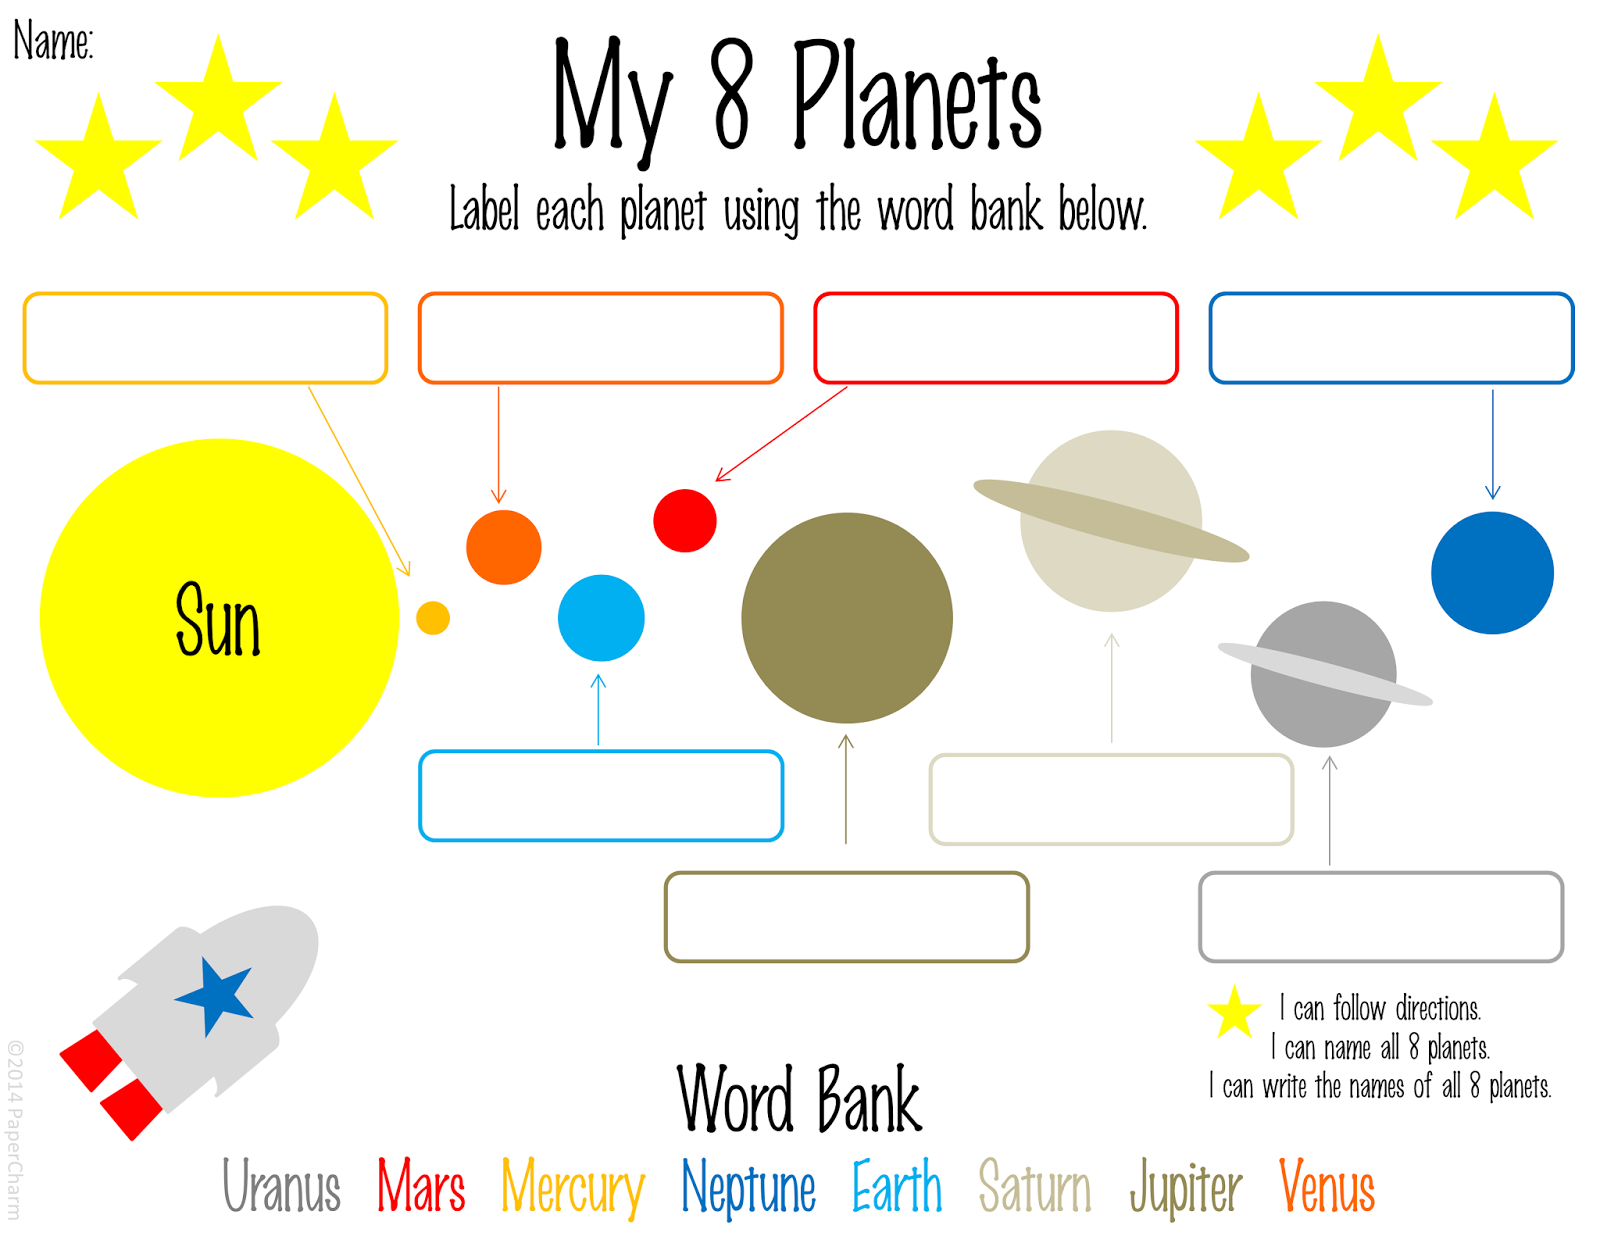 Uncategorized Planet Worksheets planet worksheets 1st grade first due to worksheet solar system joindesignseattle worksheet